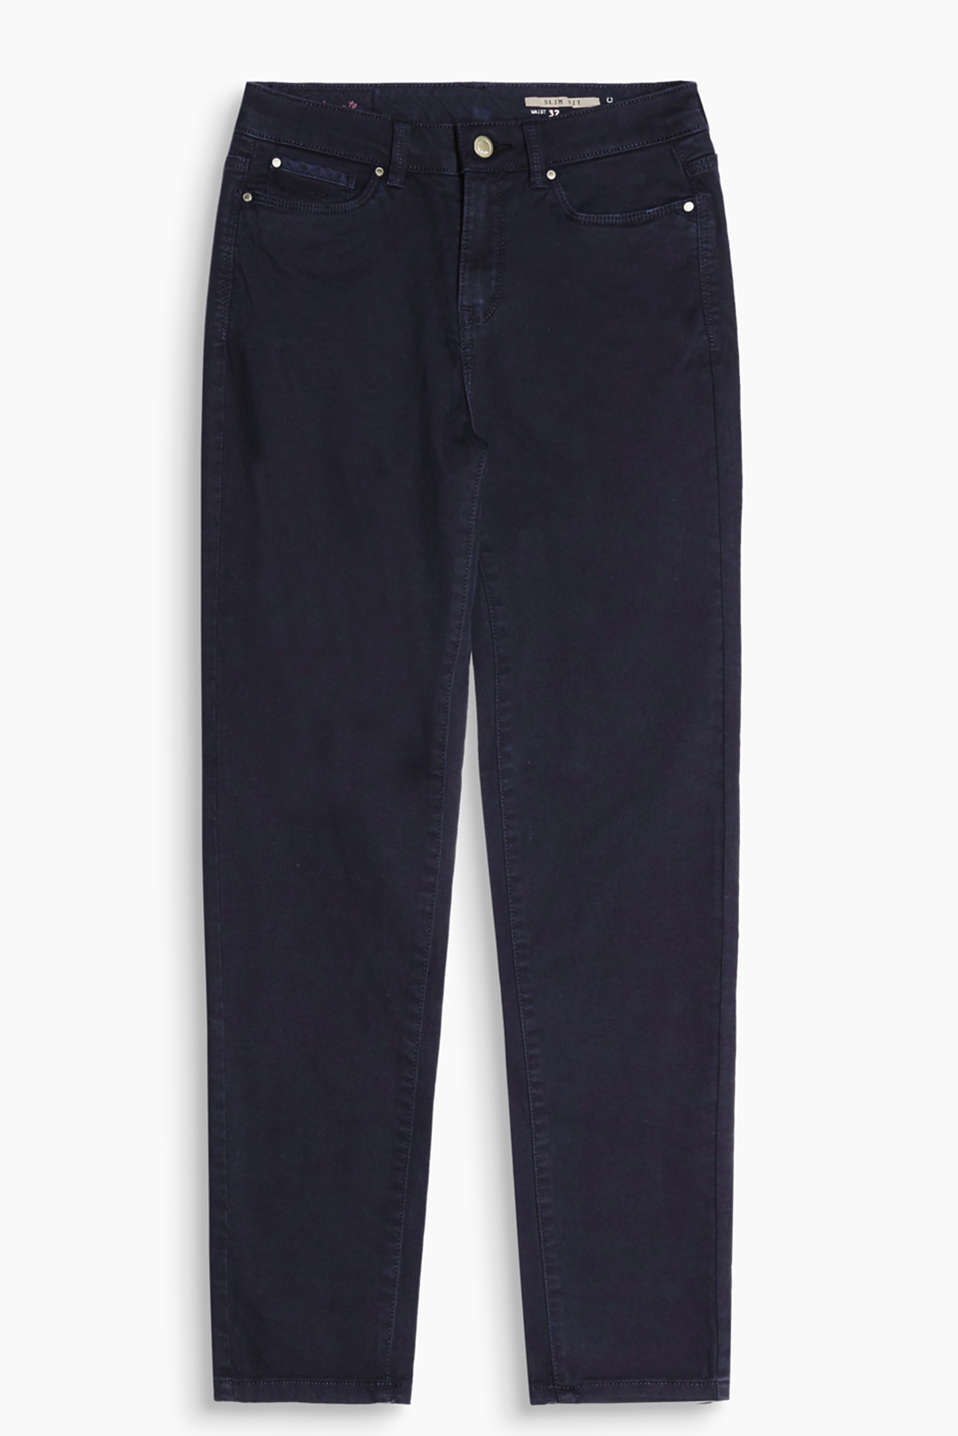 Slim-fitting five-pocket trouser made of cotton with added stretch for comfort